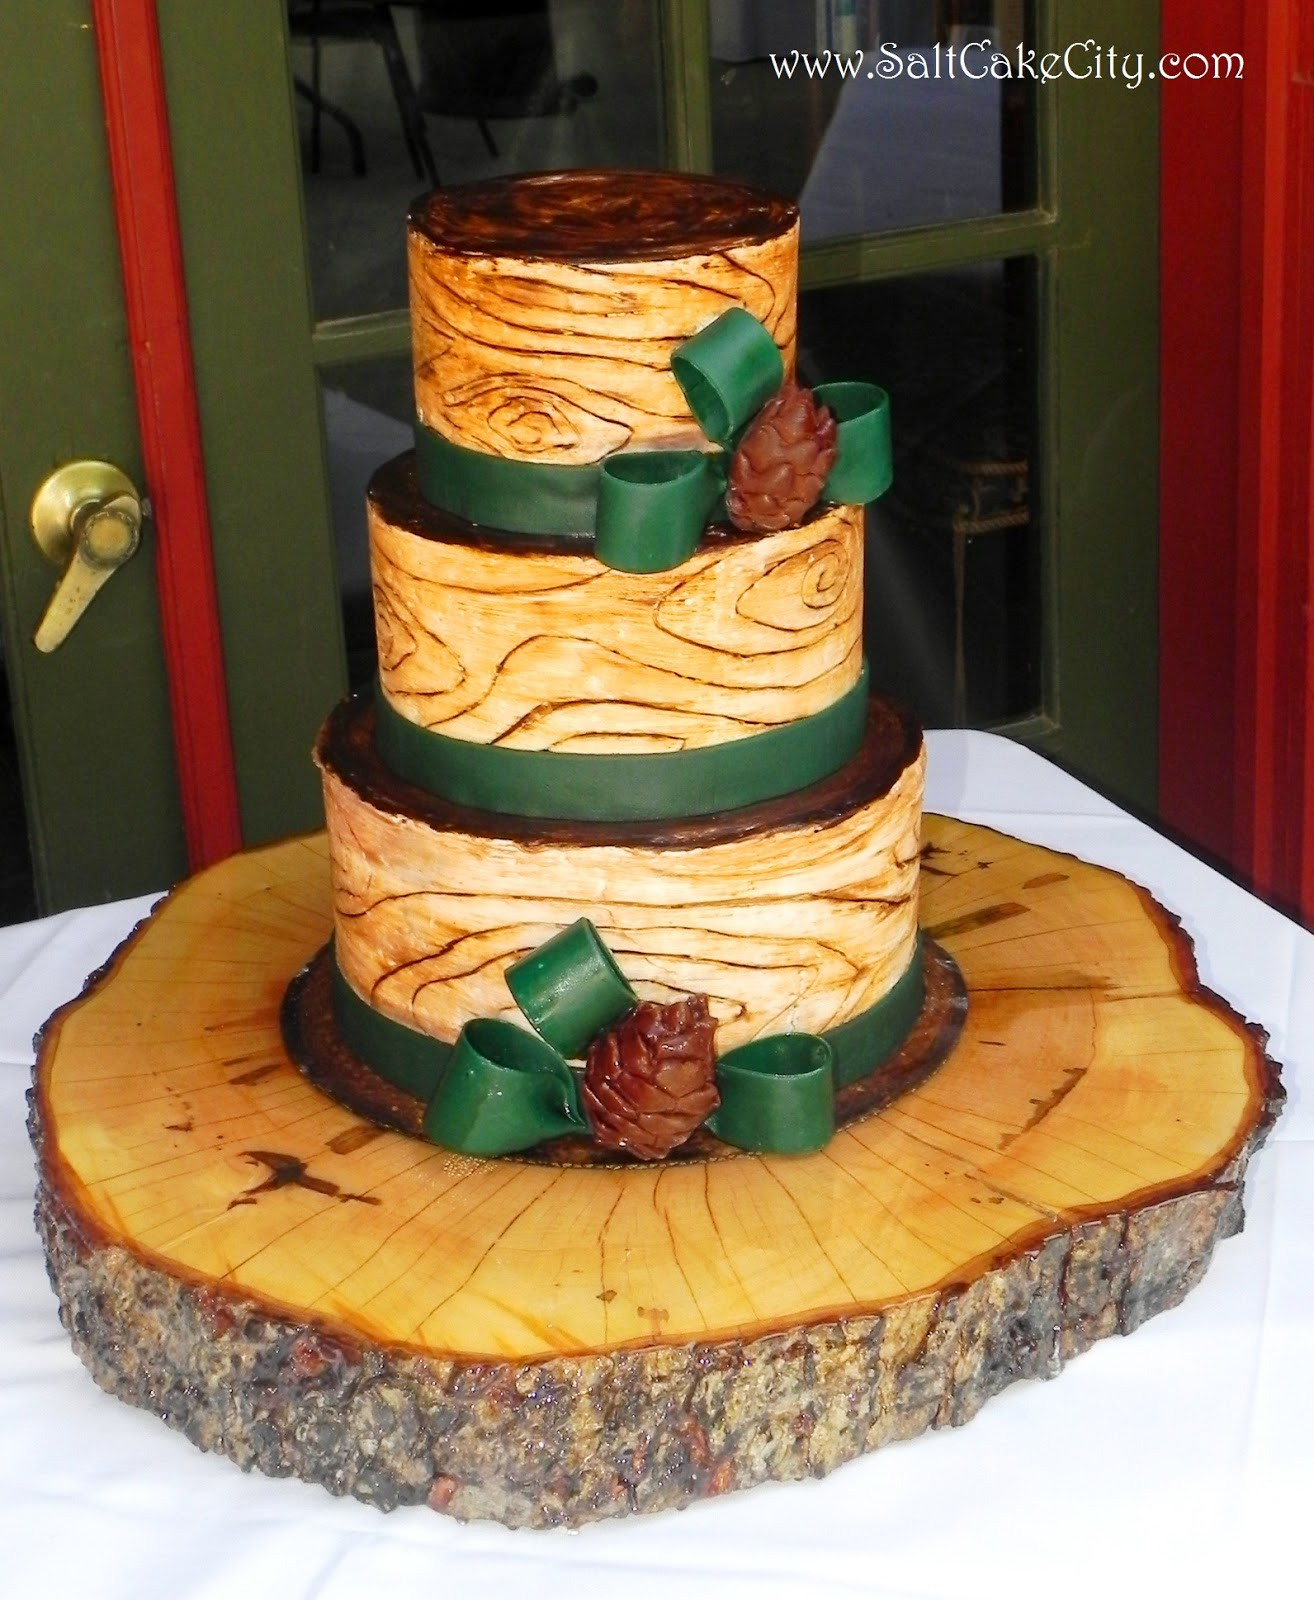 Salt Cake City: Wood Grain Wedding Cake